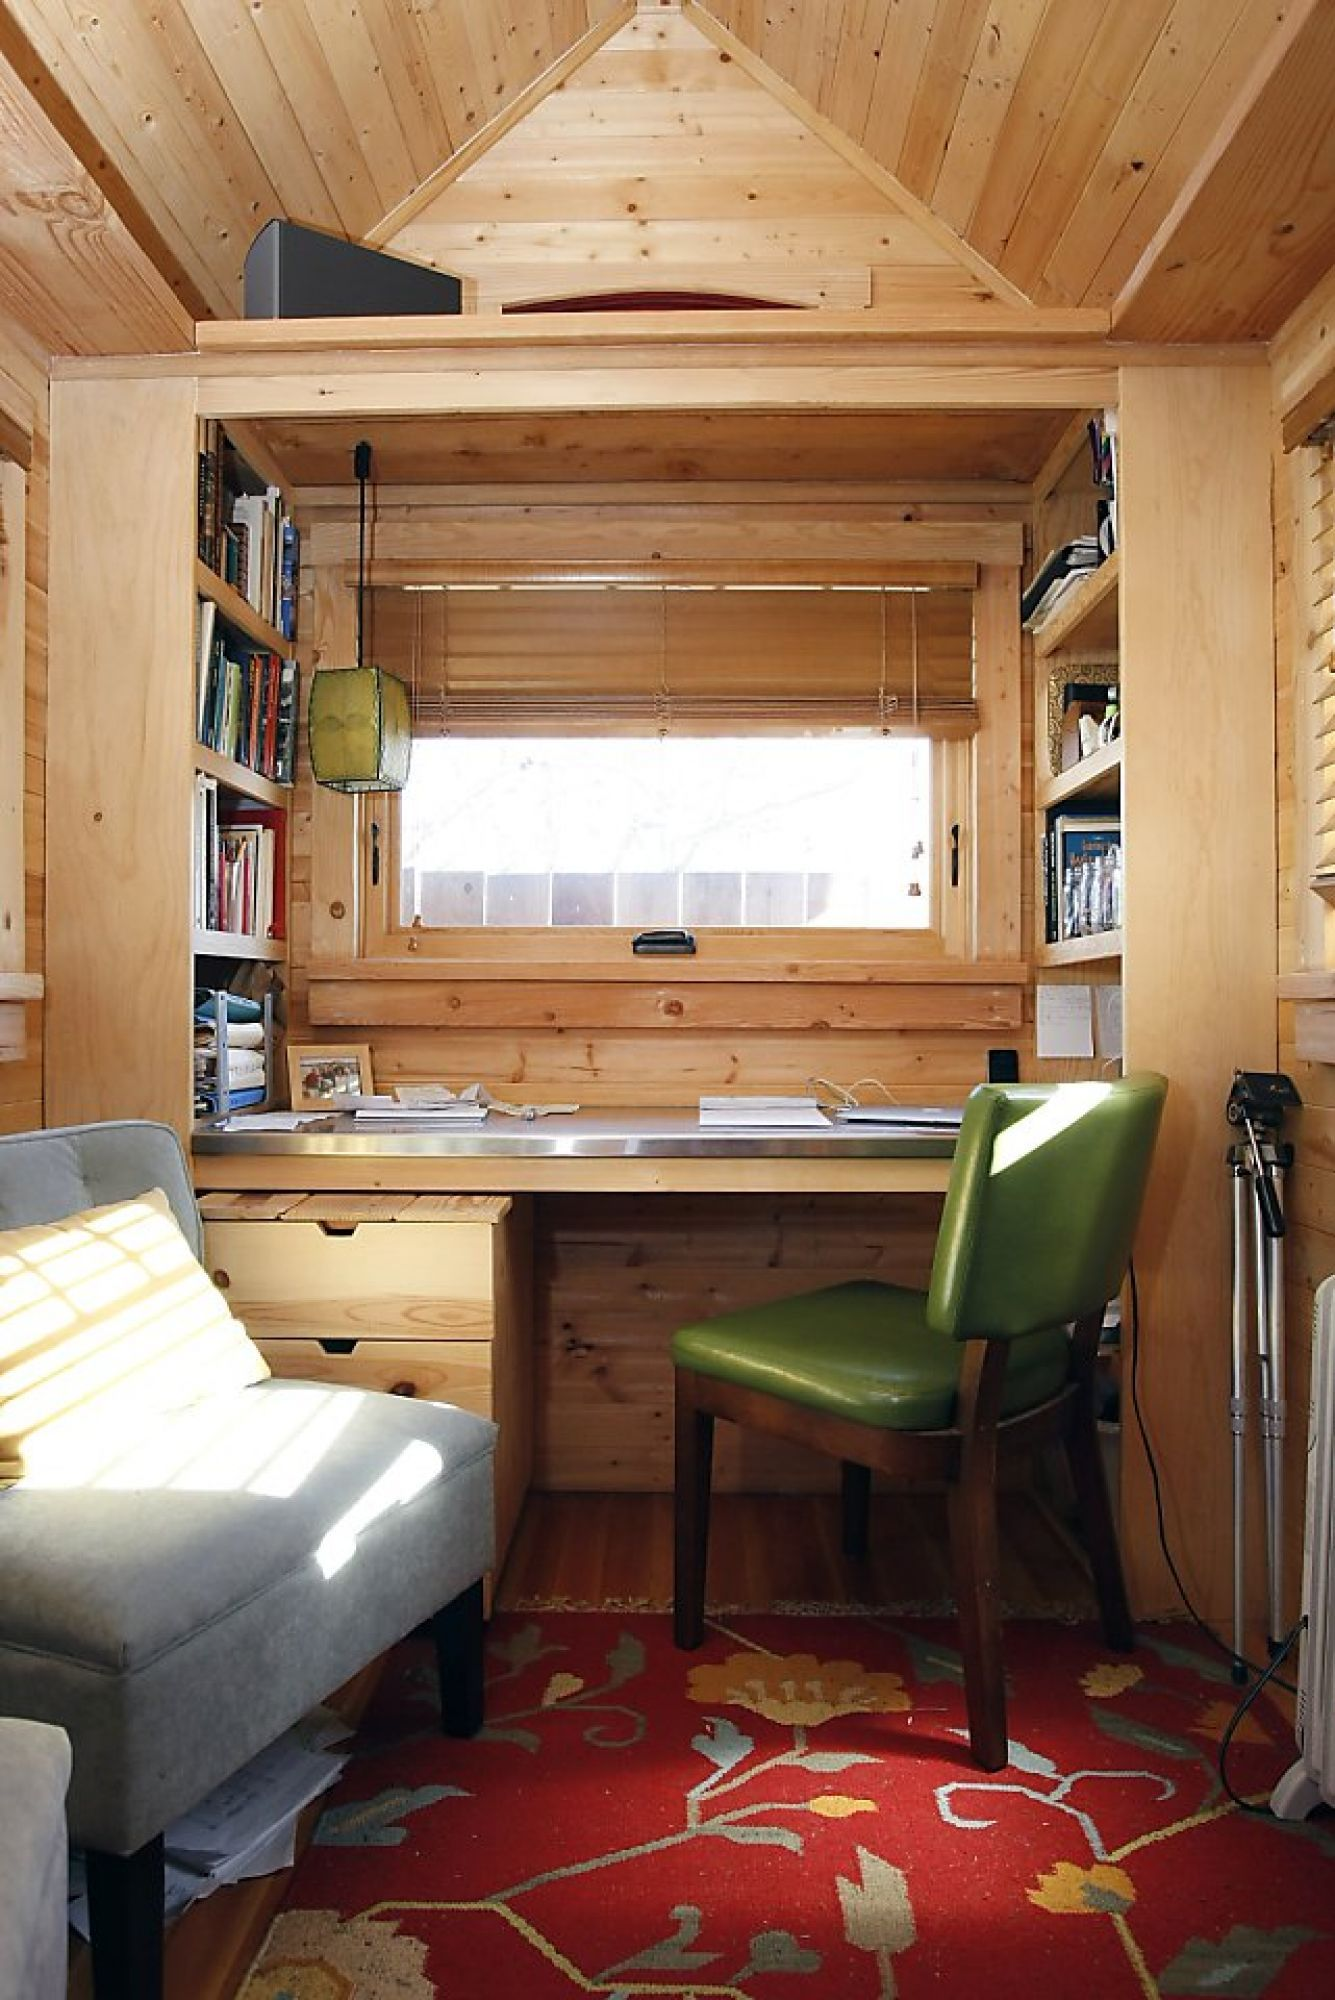 Small House Movement Living In 120 Square Feet Small House Movement Tiny House Living House